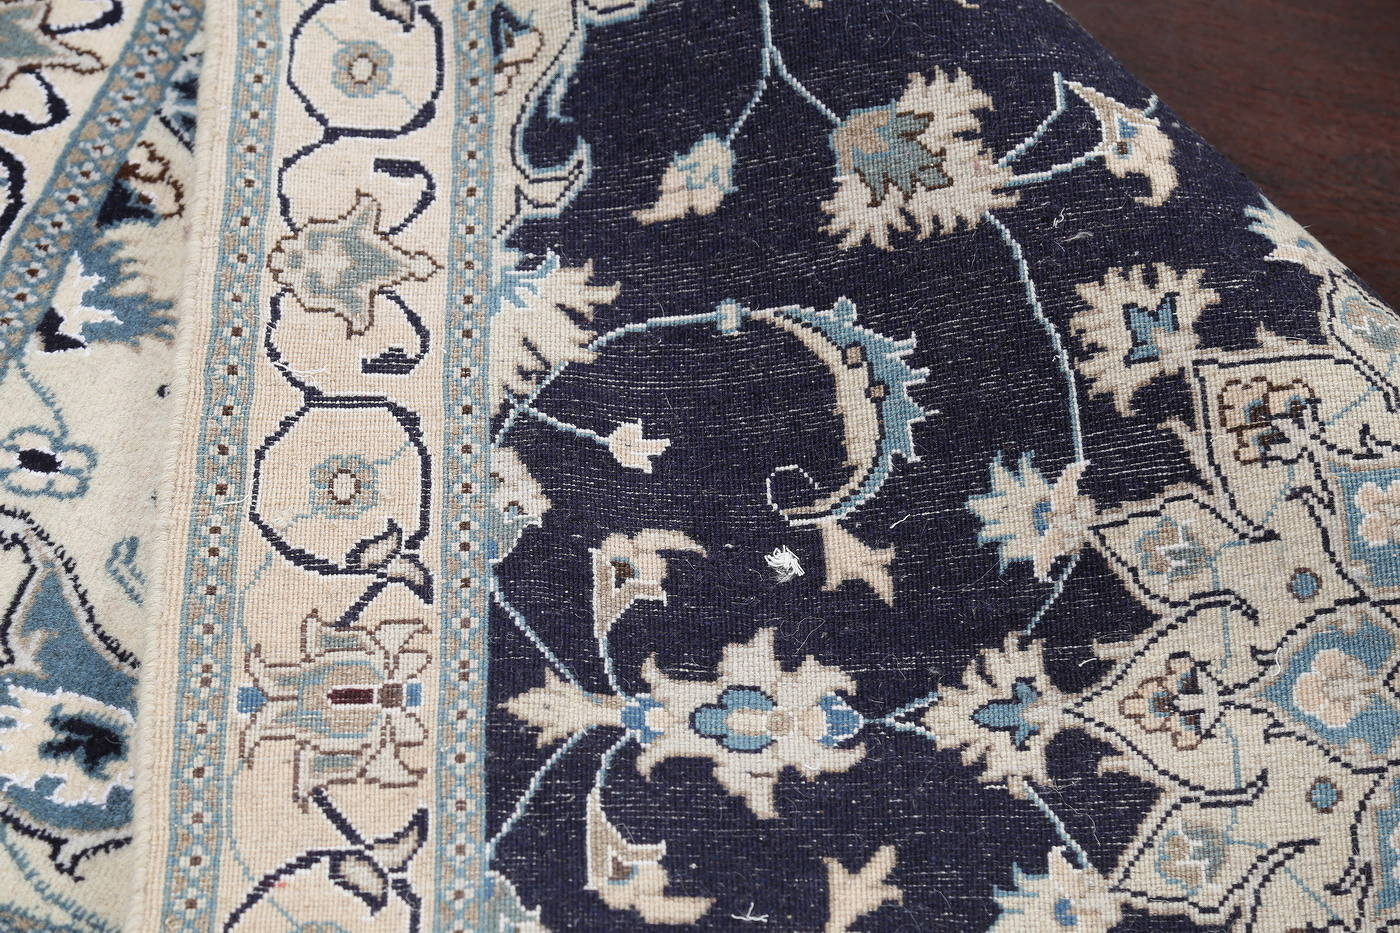 Wool/Silk Floral Navy Blue Nain Persian Oriental Hand-Knotted Area Rug 4x7